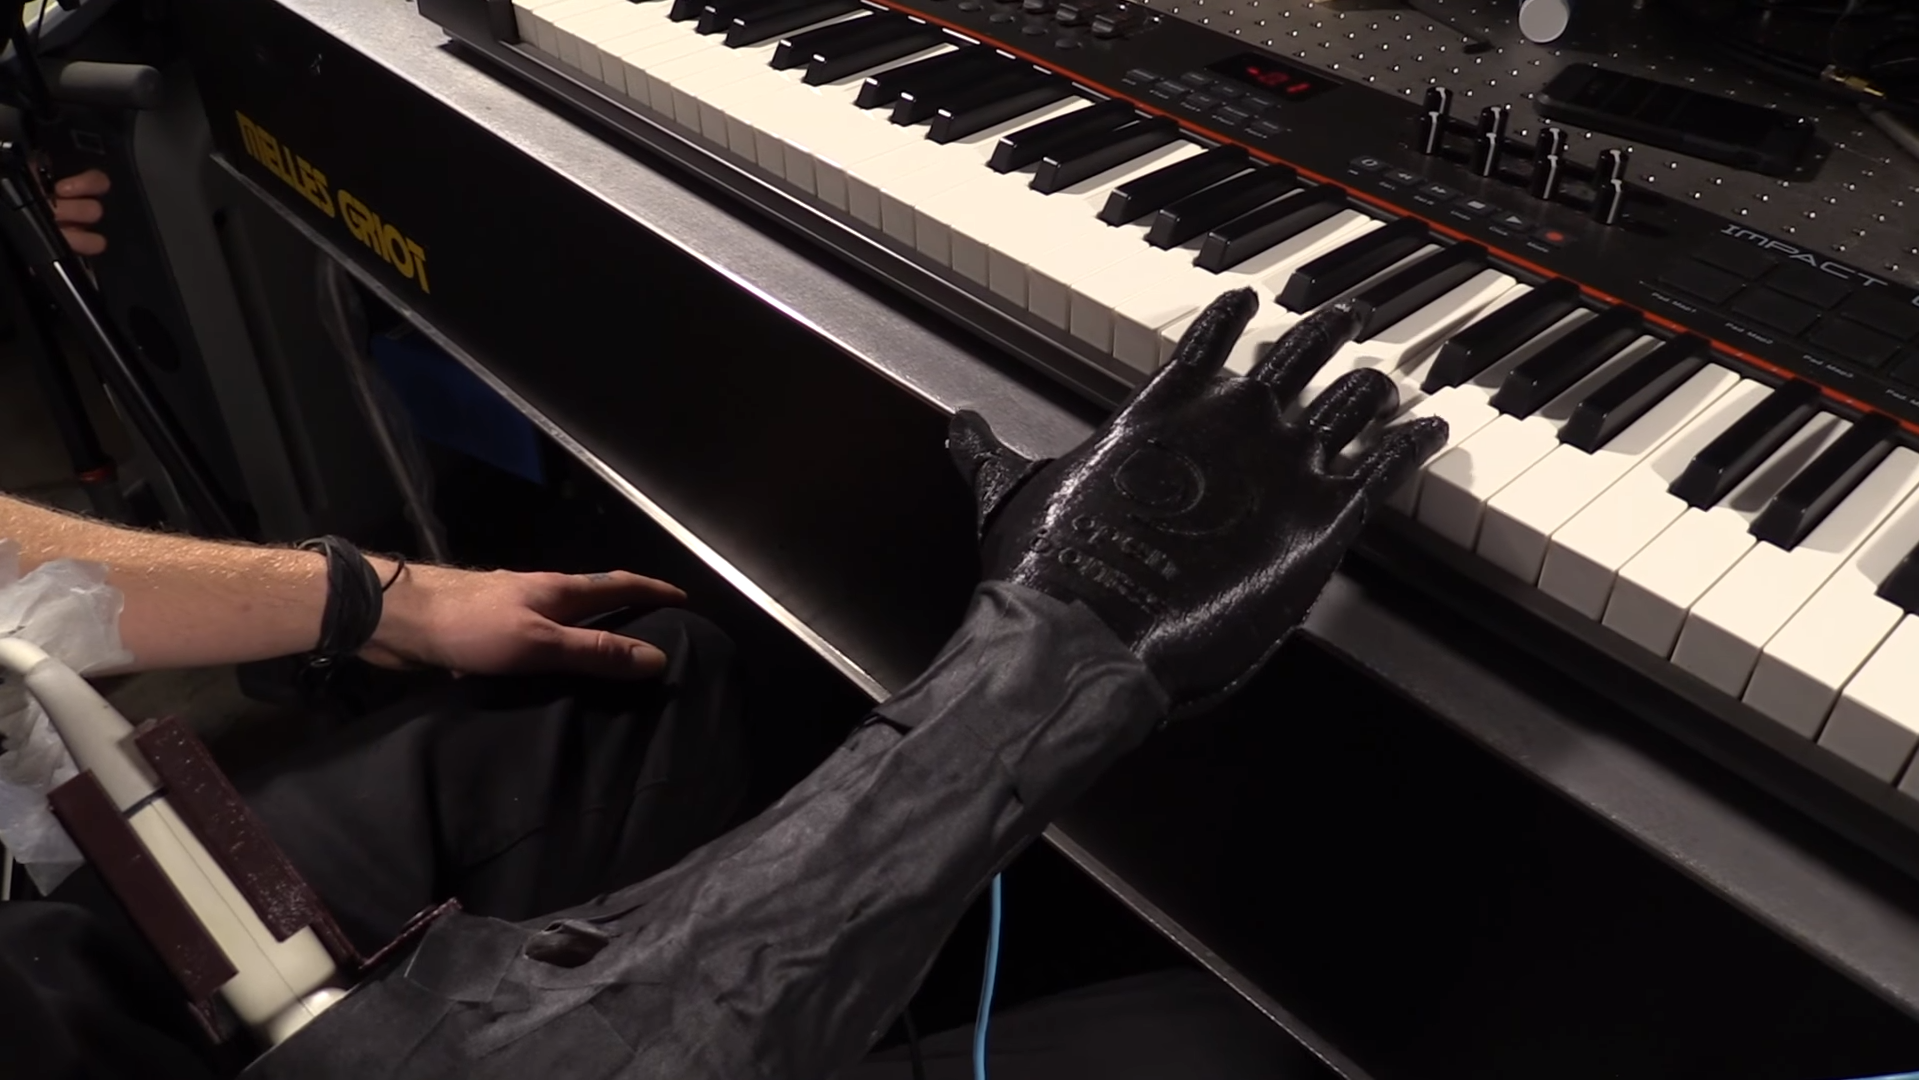 Amputee Musician Tests Luke Skywalker Hand | All3DP